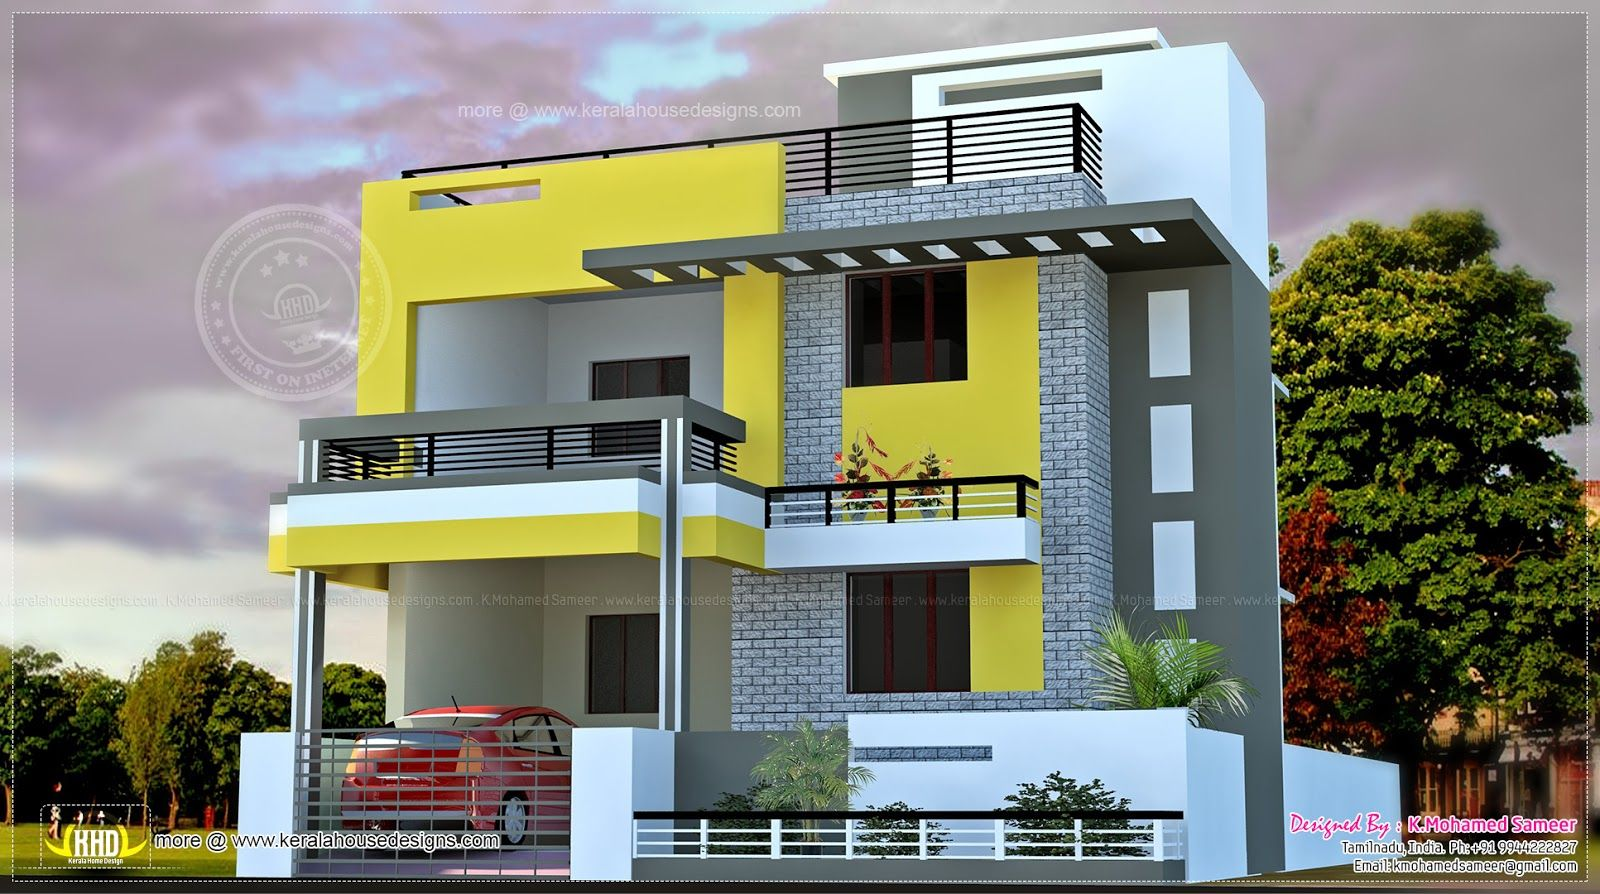 Elevations of residential buildings in indian photo for Indian house front elevation photos for single house